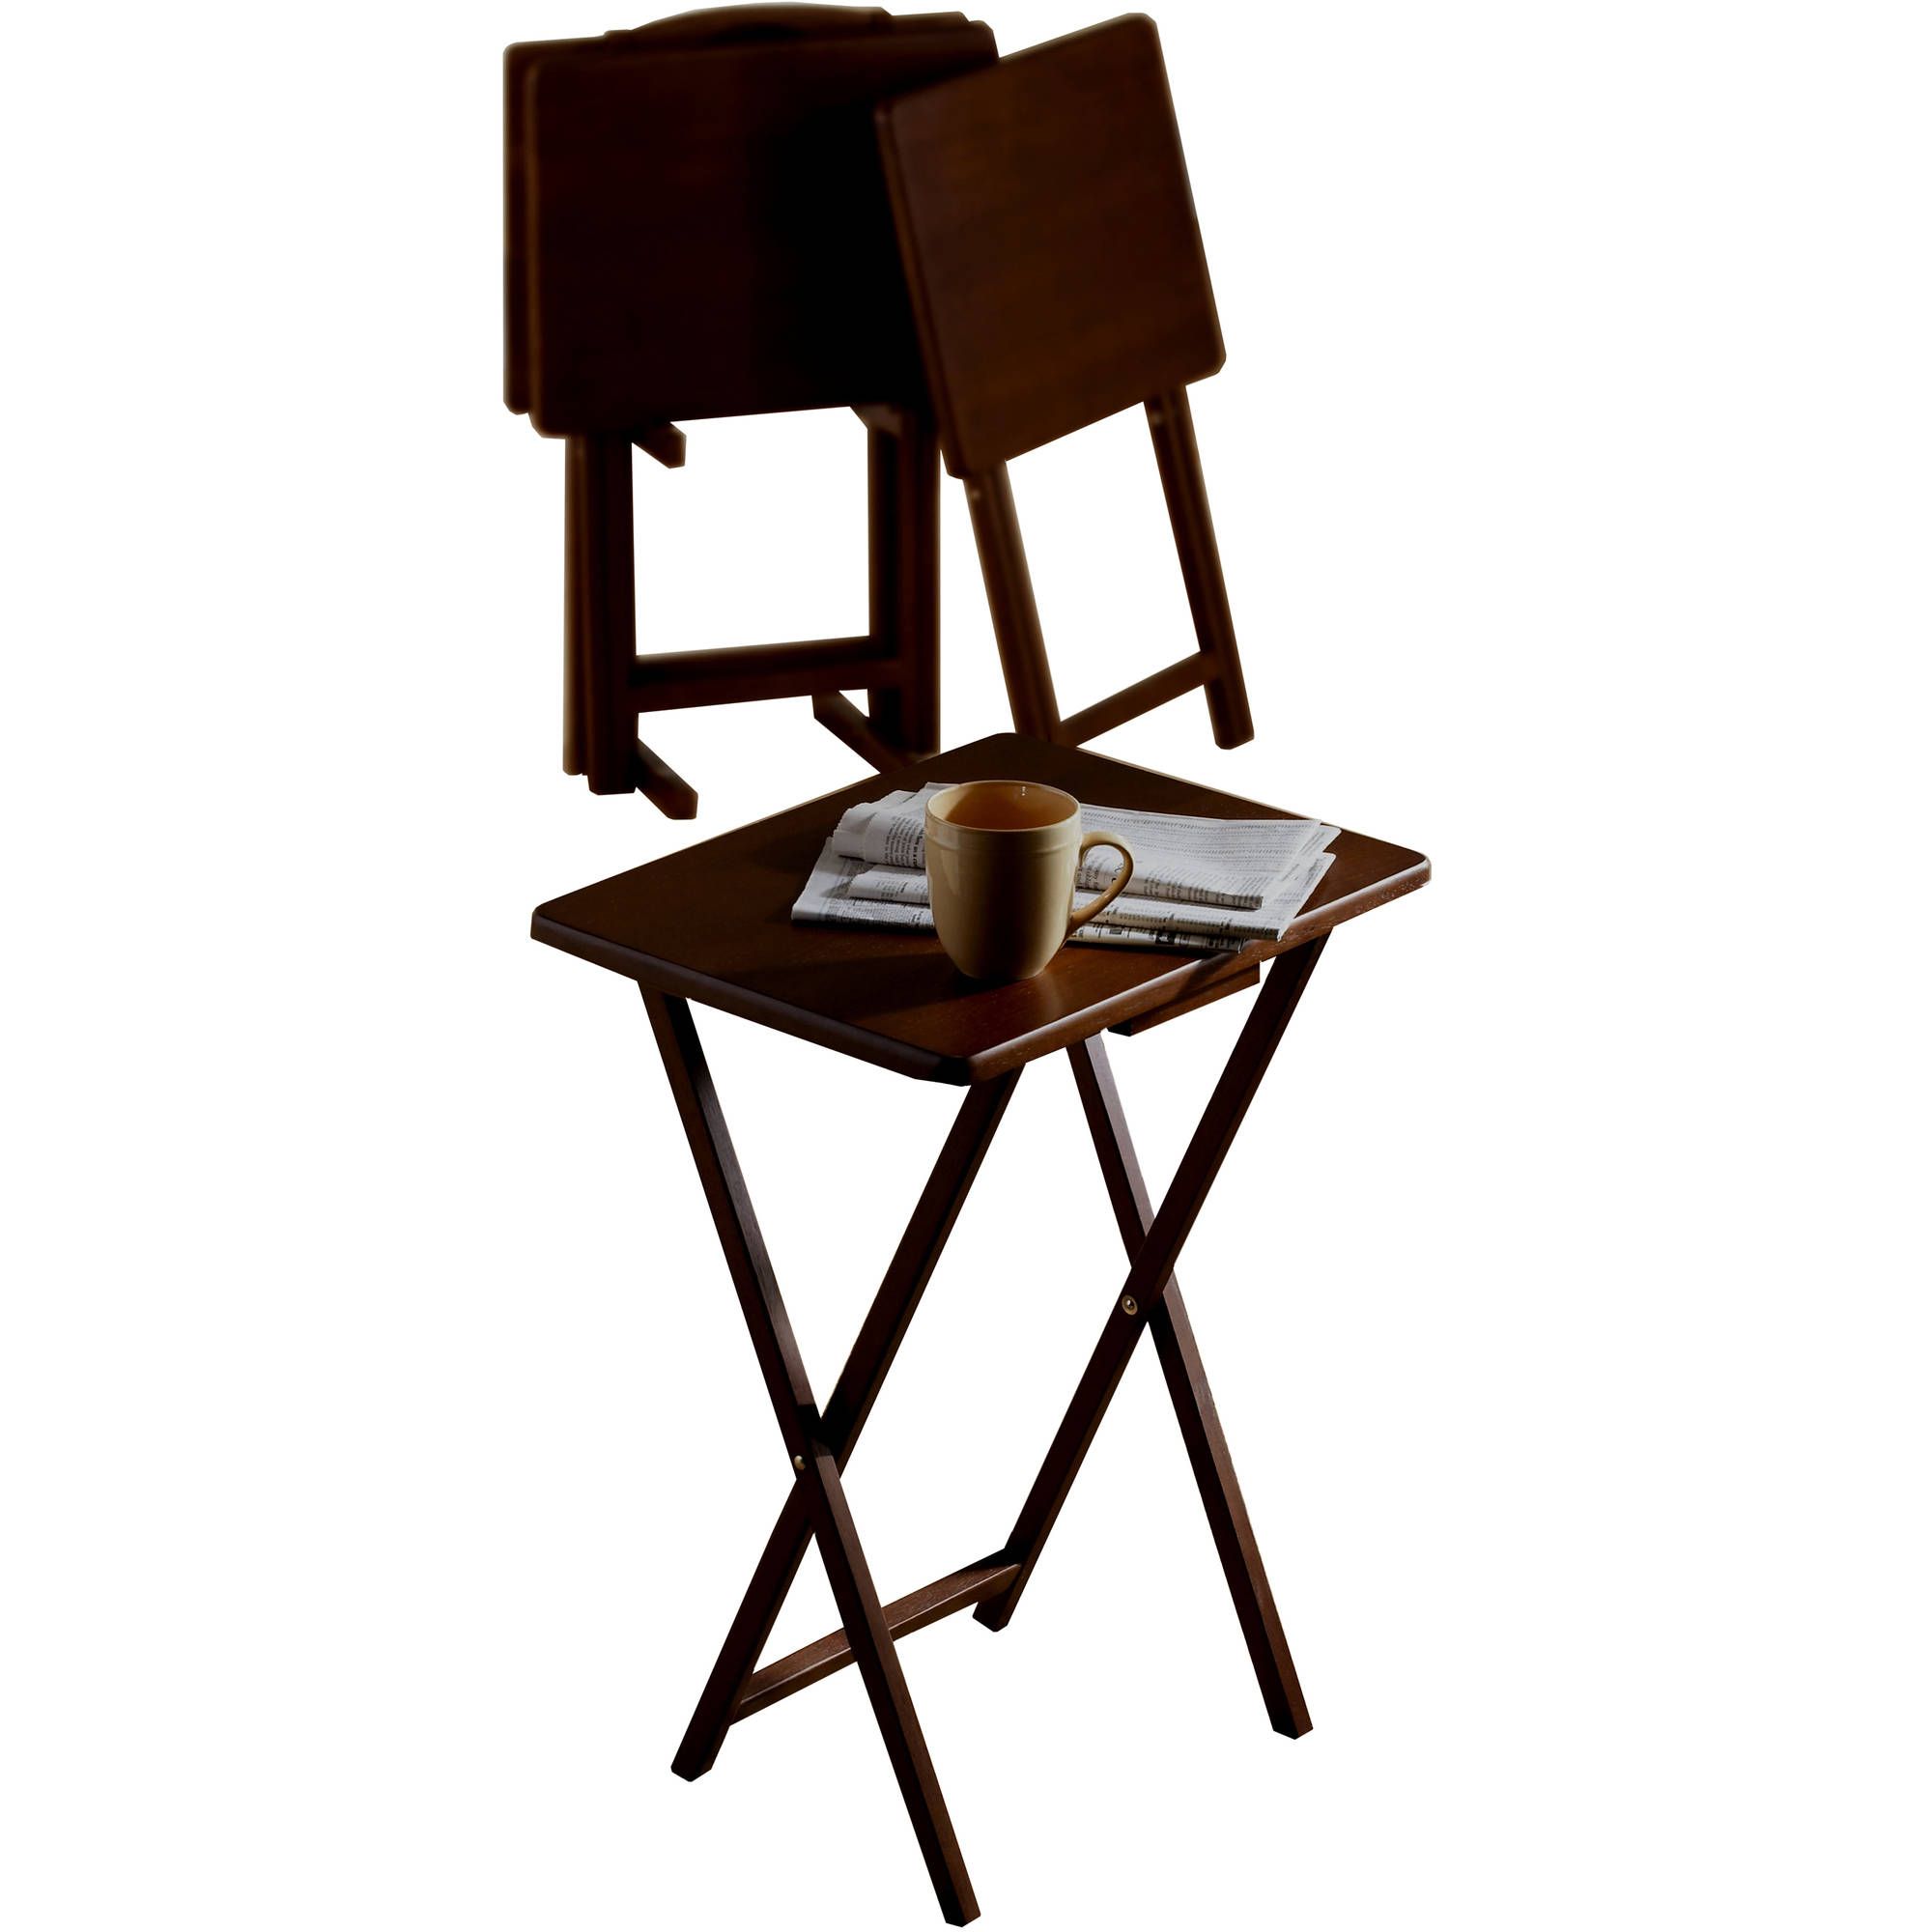 Mainstays 5pc Tray Table, Walnut